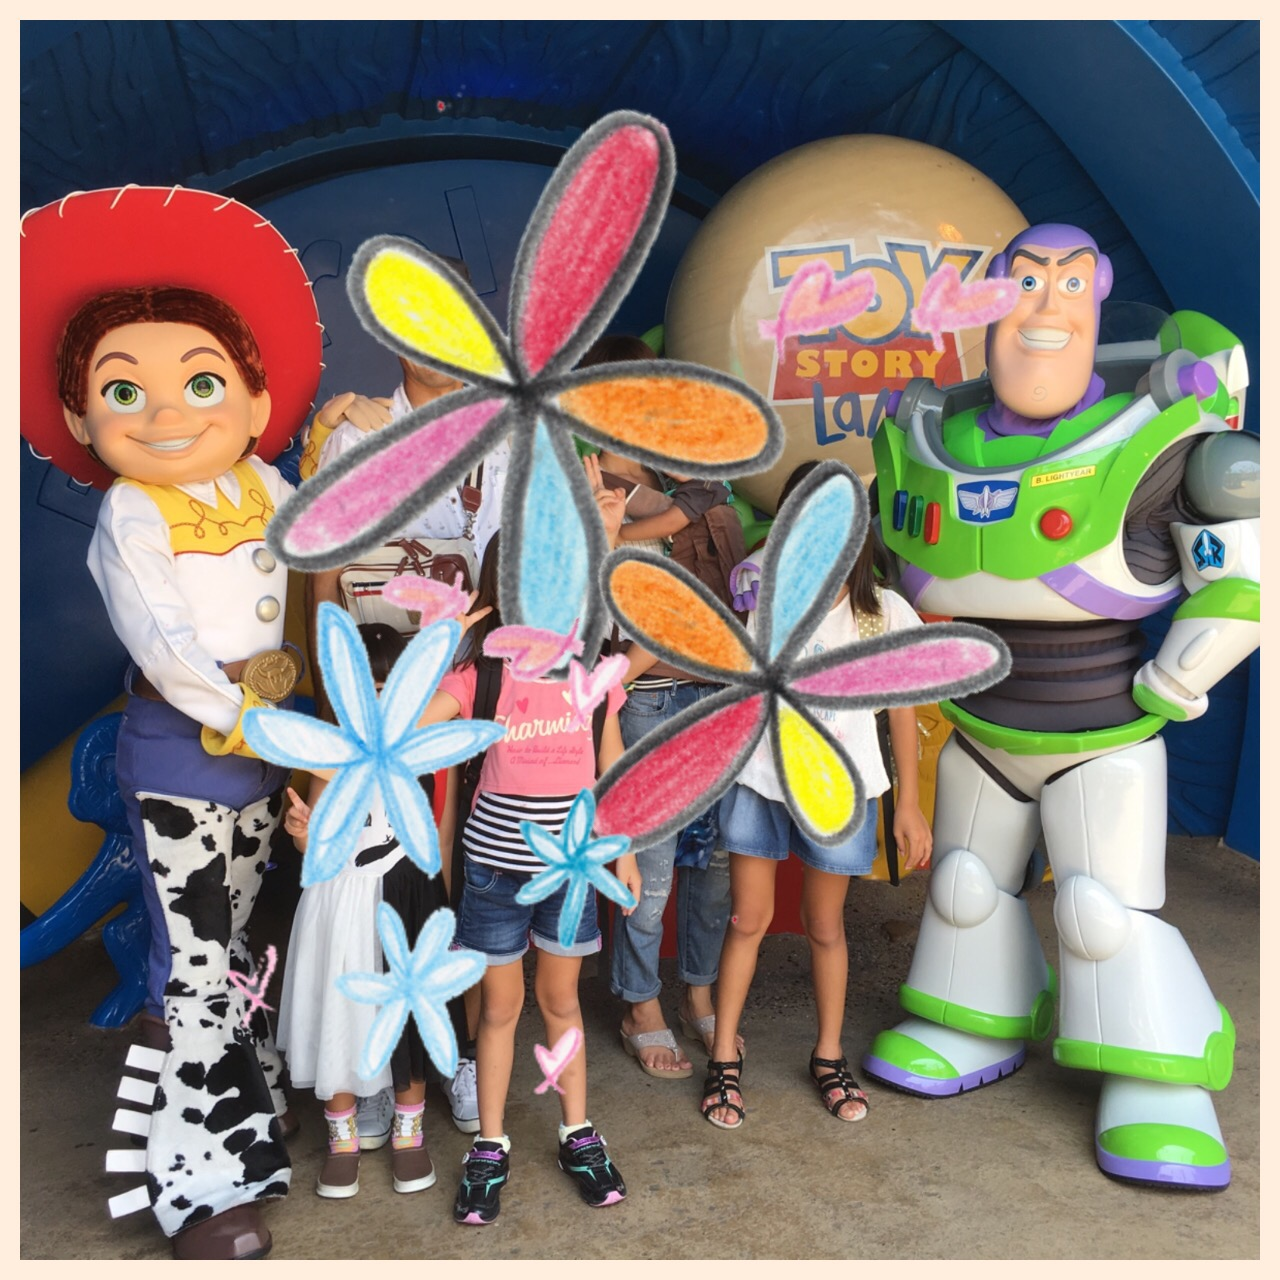 Toy_story_land